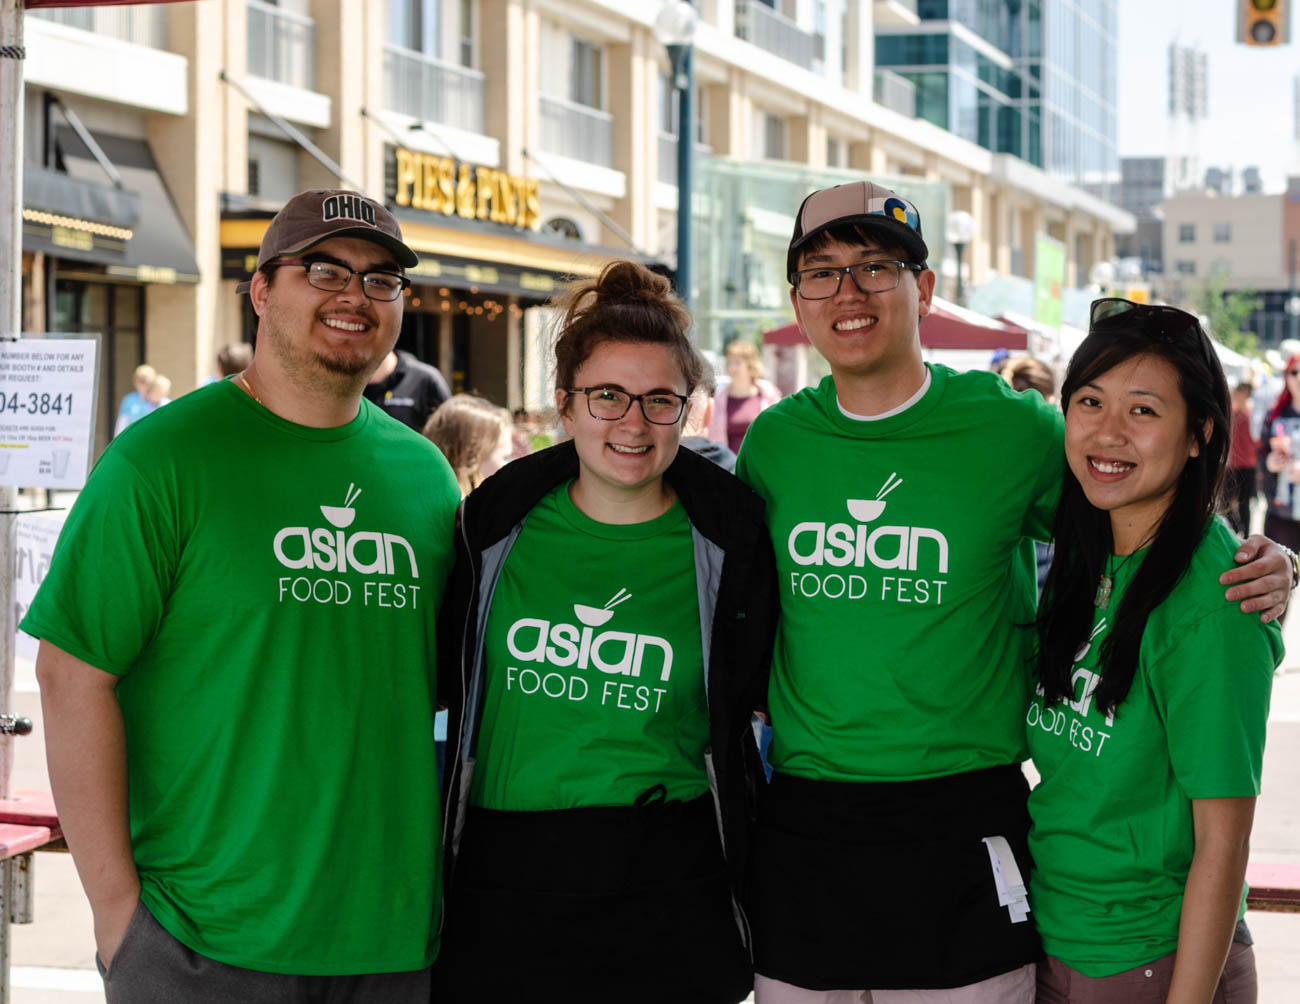 Timmy Phan, Katelynn Bruewer, Suchot Kongsomboonvech, and Diana Toan (Asian Food Fest volunteers) / Image: Kellie Coleman // Published: 5.13.19